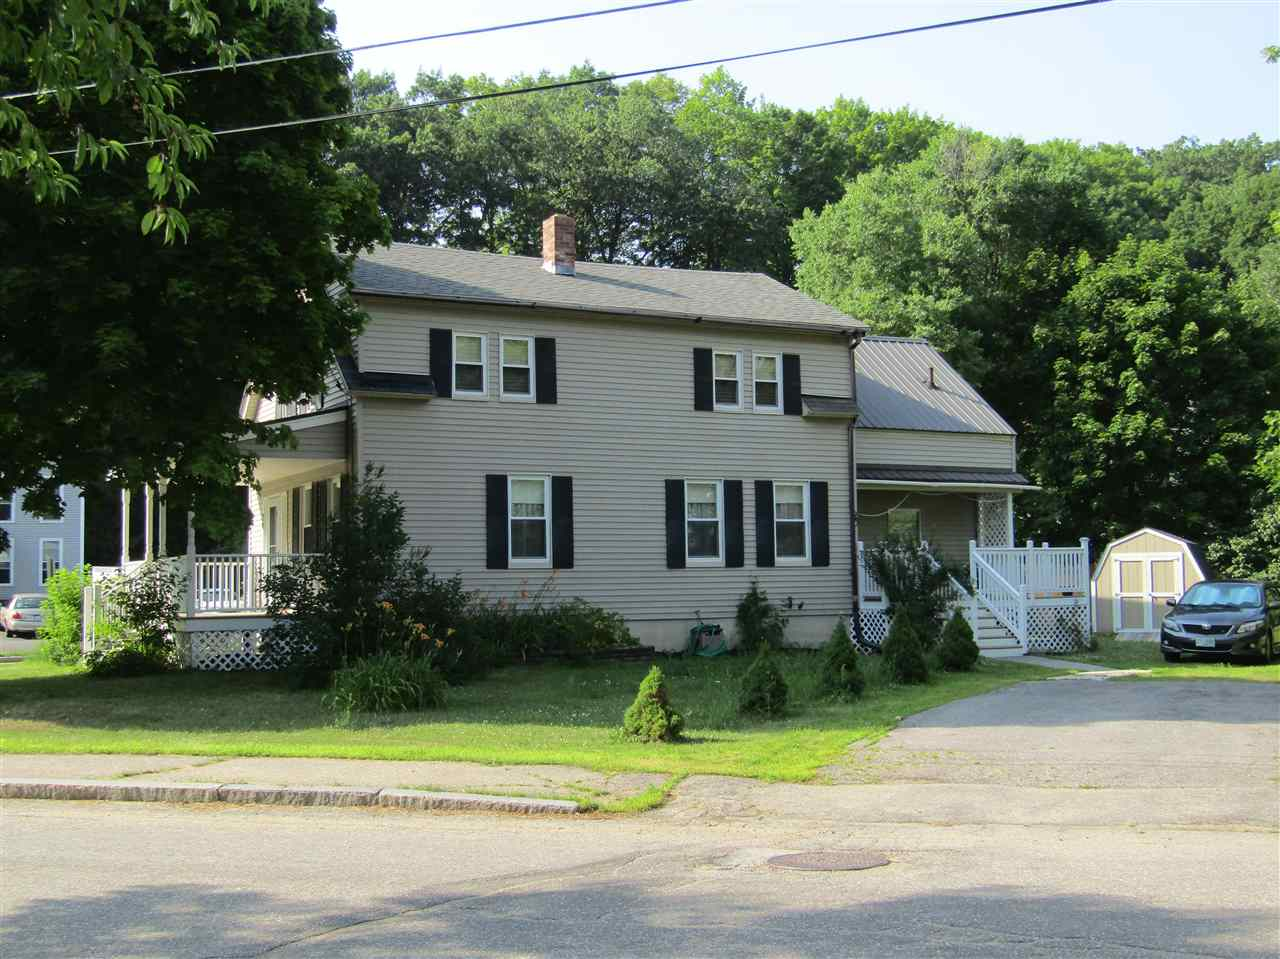 Photo of 20 Manchester Street Laconia NH 03246